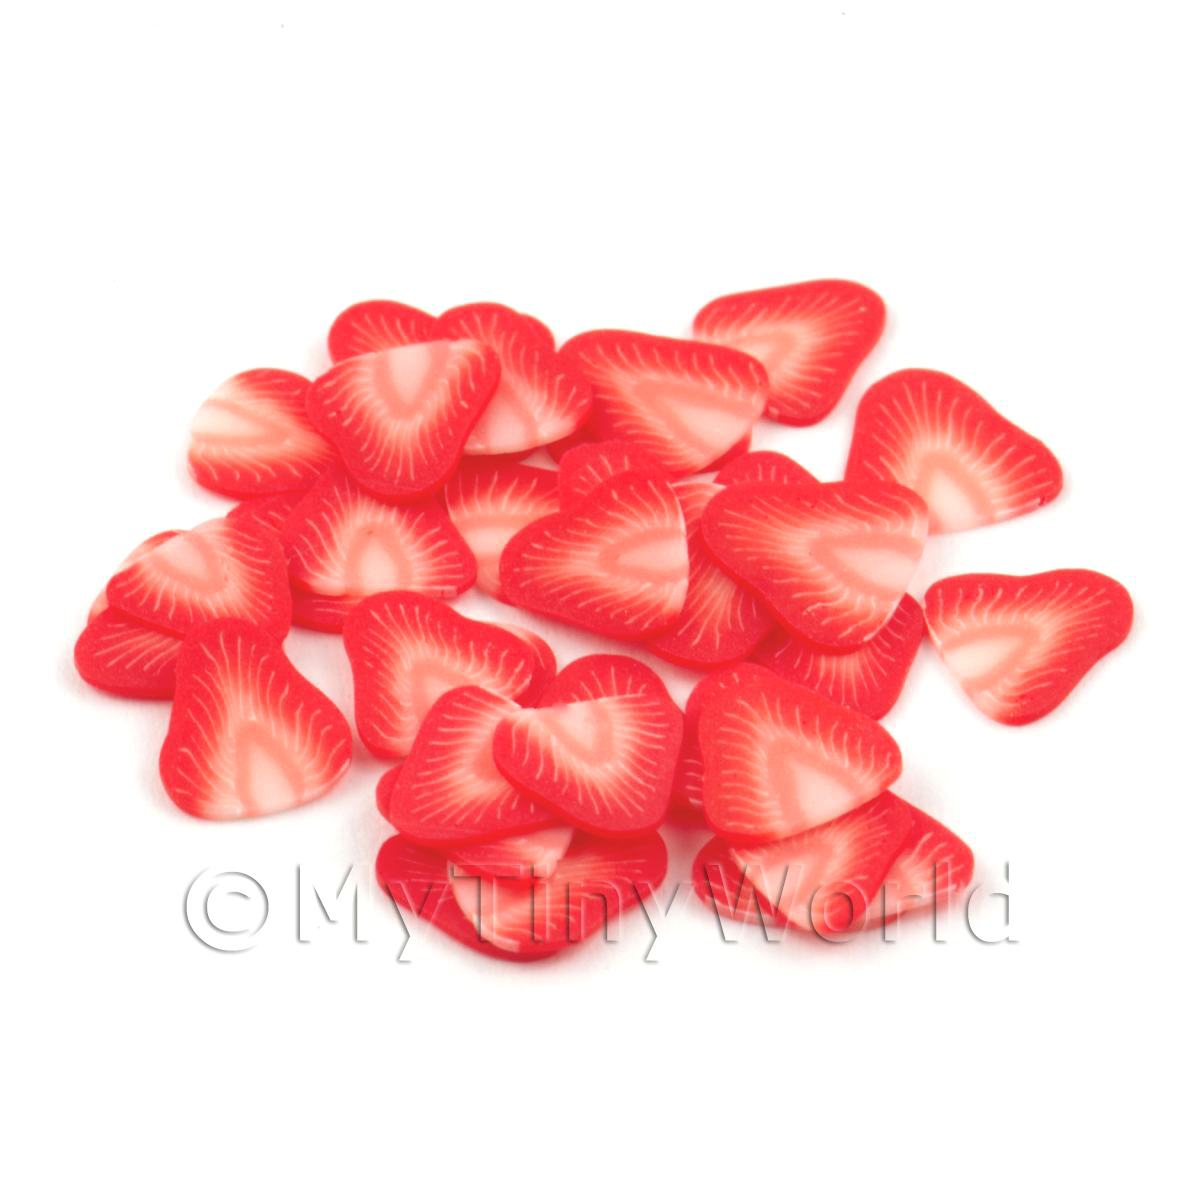 50 Strawberry Nail Art Cane Slices (NS2)